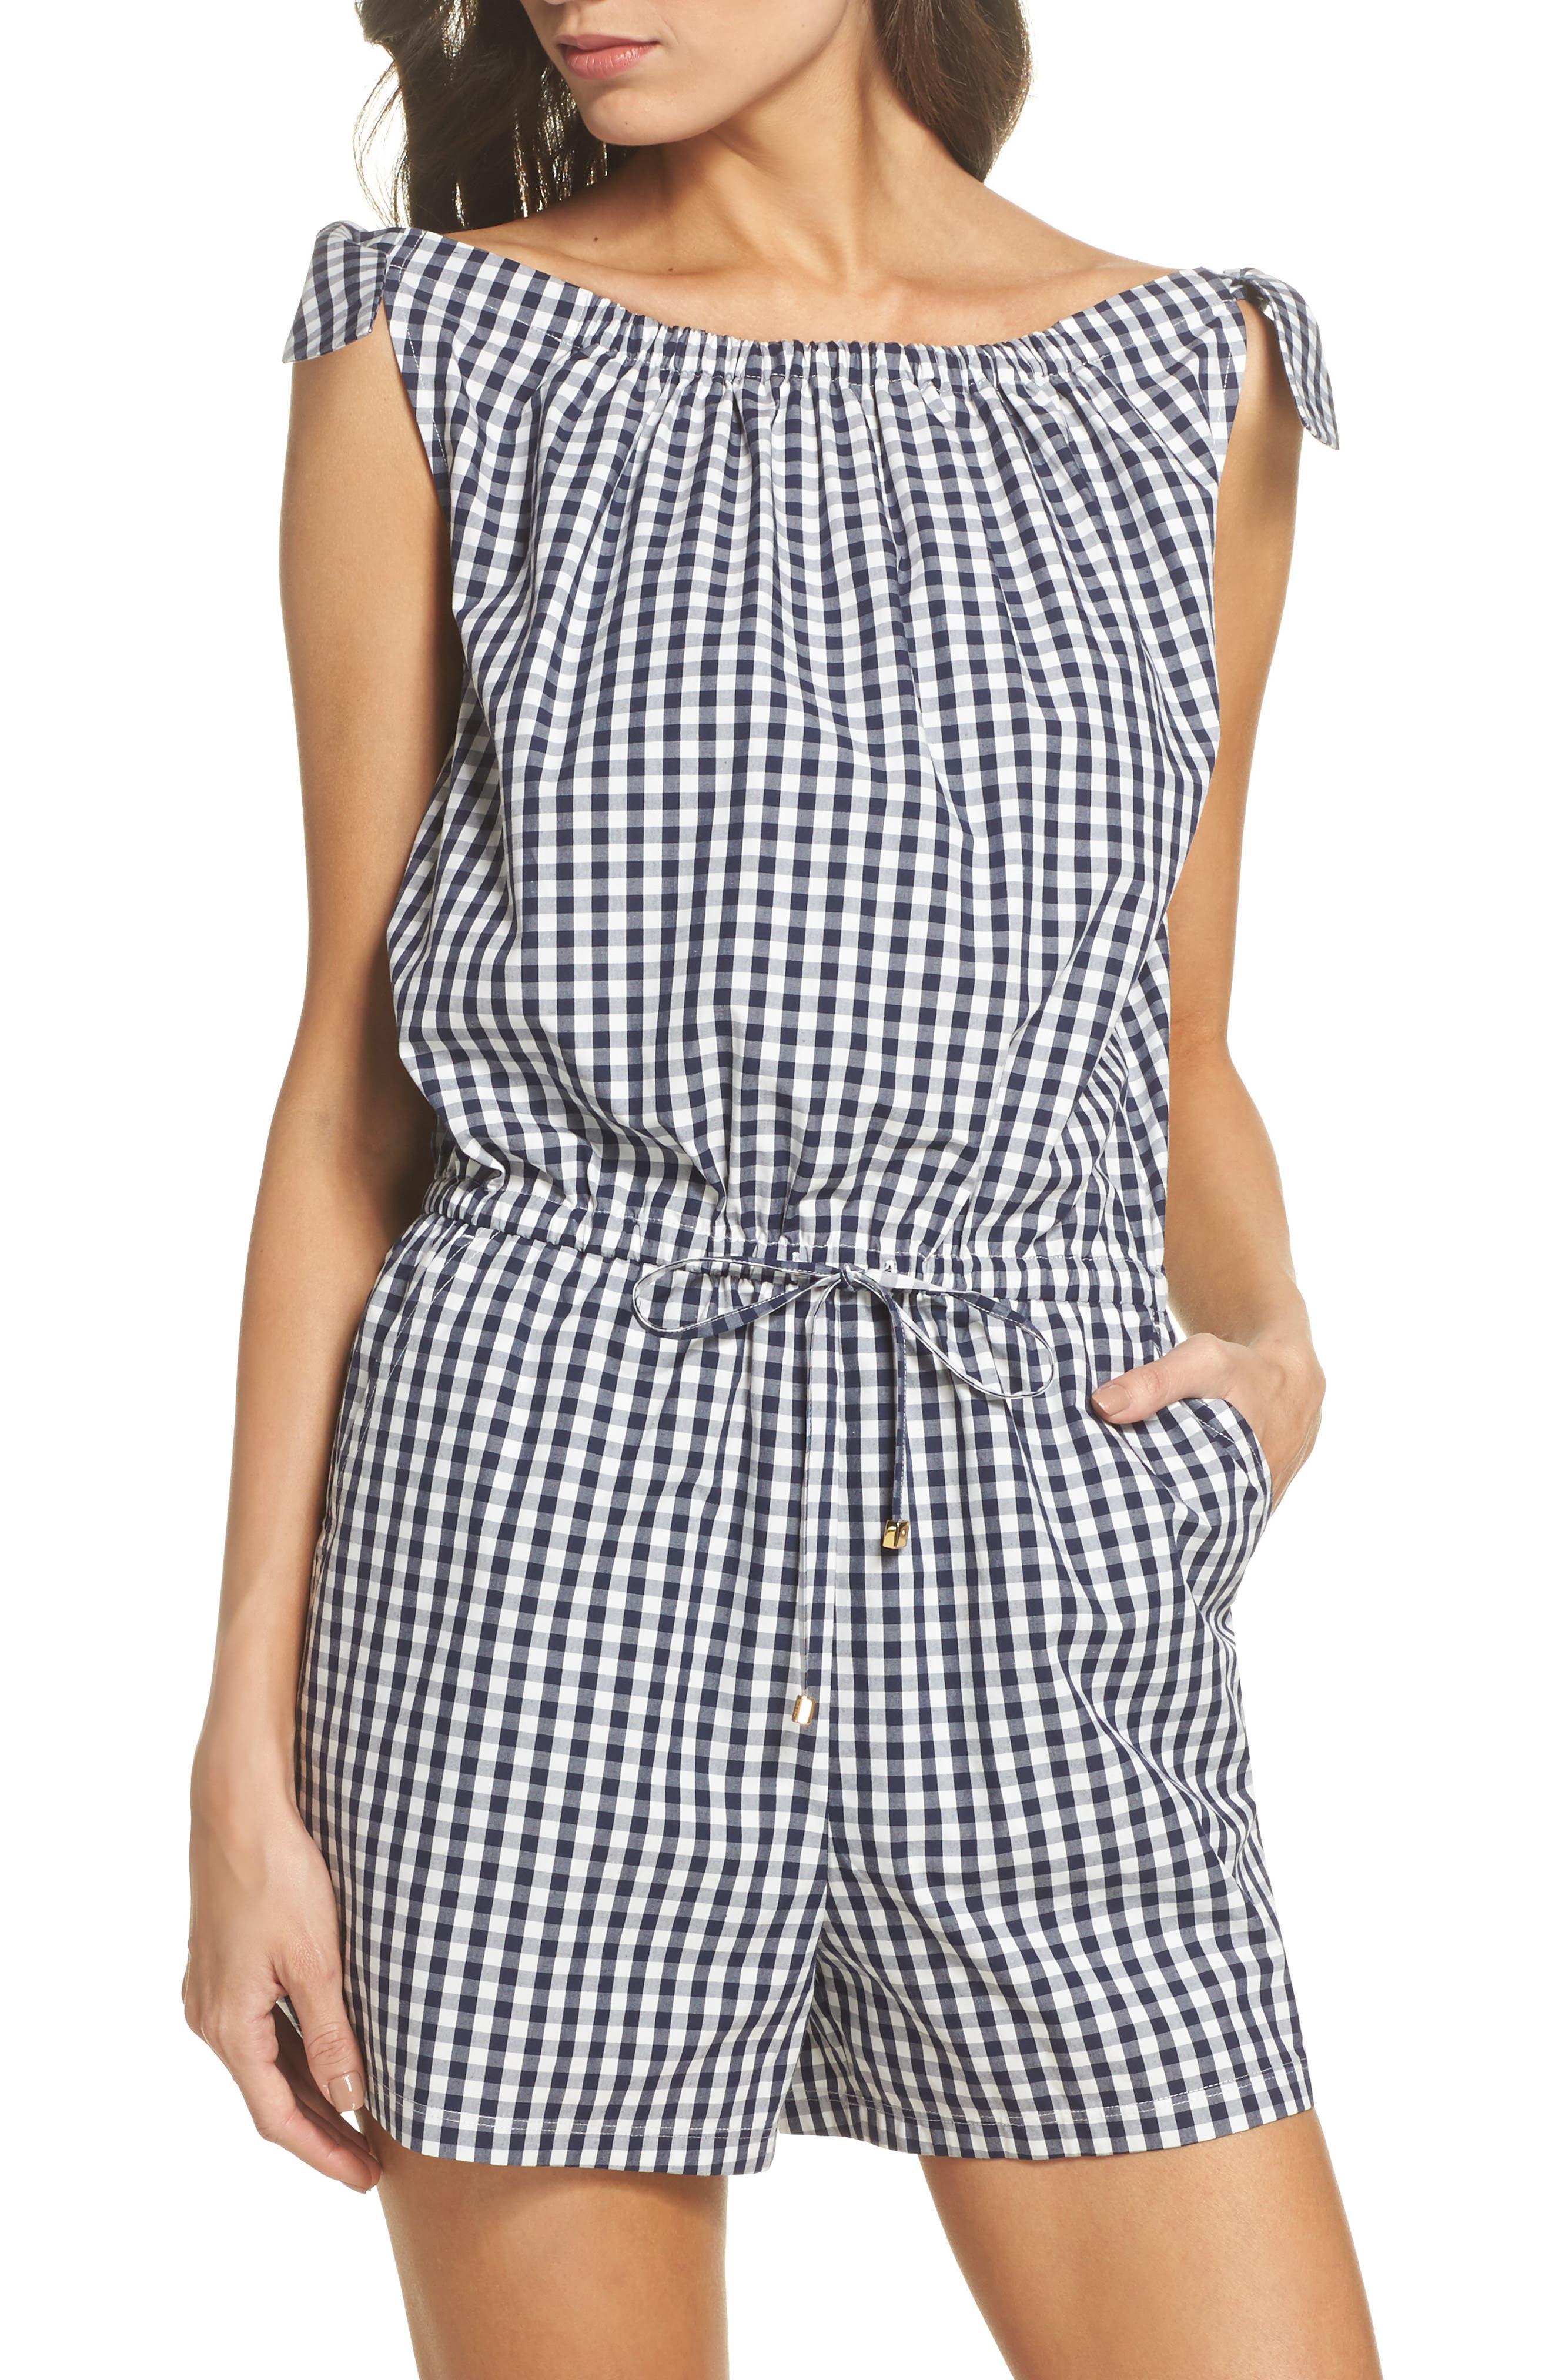 Tory Burch Gingham Check Romper